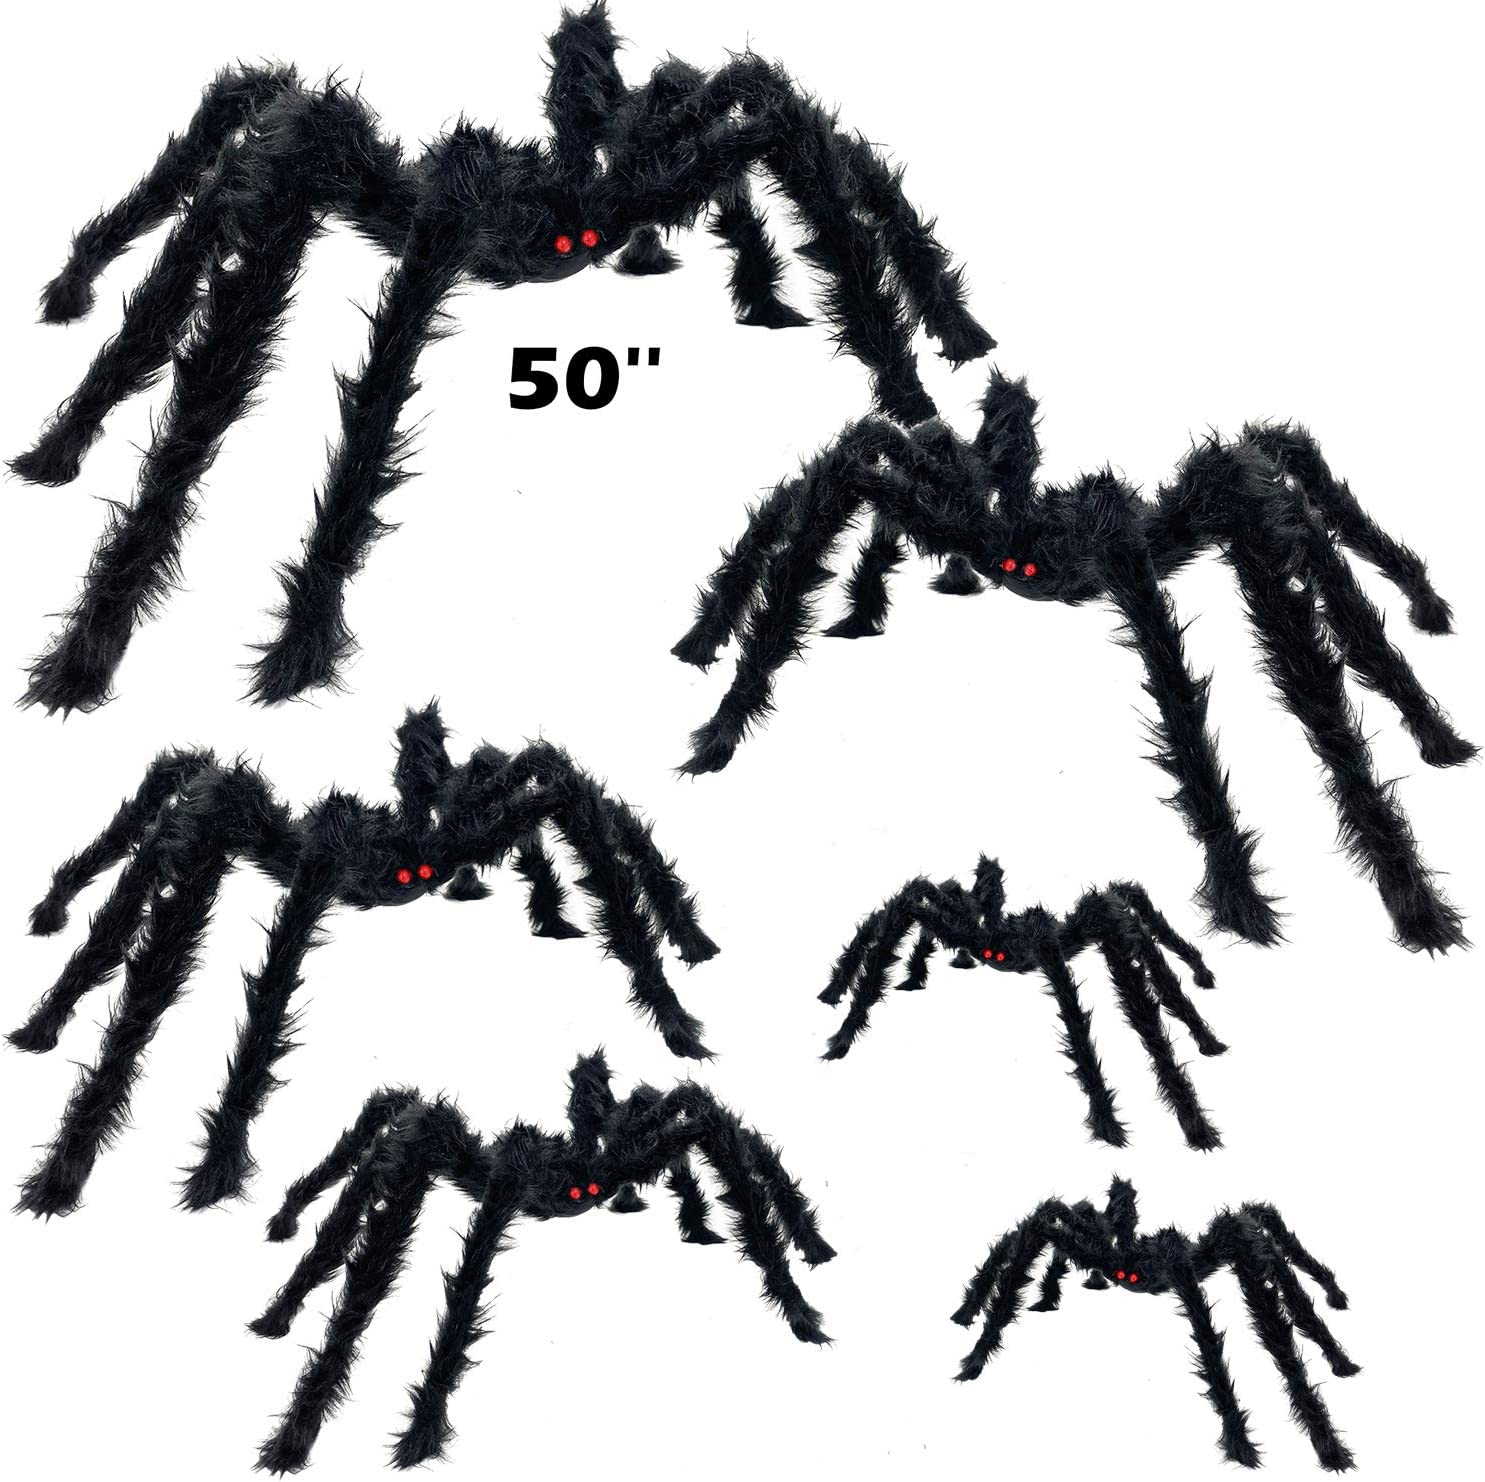 """AMENON 6Pcs Halloween Spider Decorations 50"""" 36"""" 30"""" 20"""" 12"""" Giant Scary Halloween Props with Red Eyes,Realistic Hairy Large Spiders Set Tree Window Wall Yard Party Haunted House Indoor Outdoor Decor"""